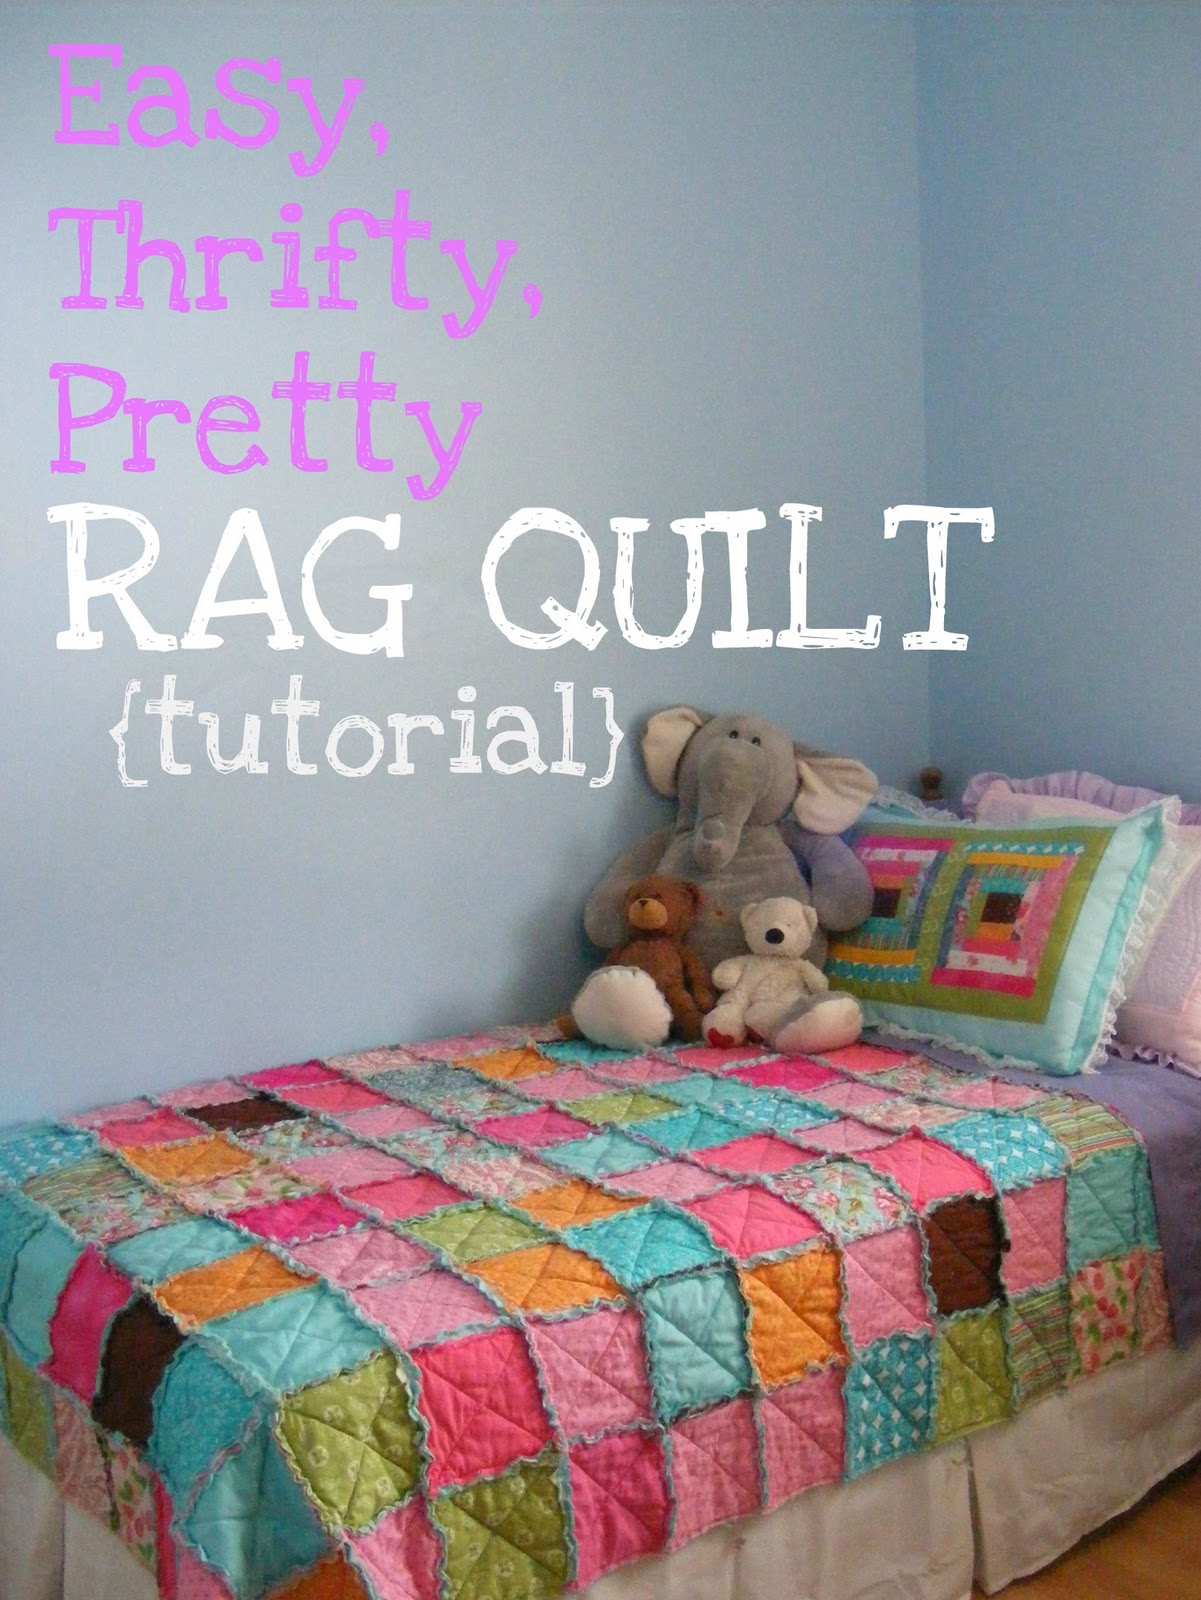 The Complete Guide to Imperfect Homemaking: Easy, Thrifty, Pretty ... : rag quilts for beginners - Adamdwight.com